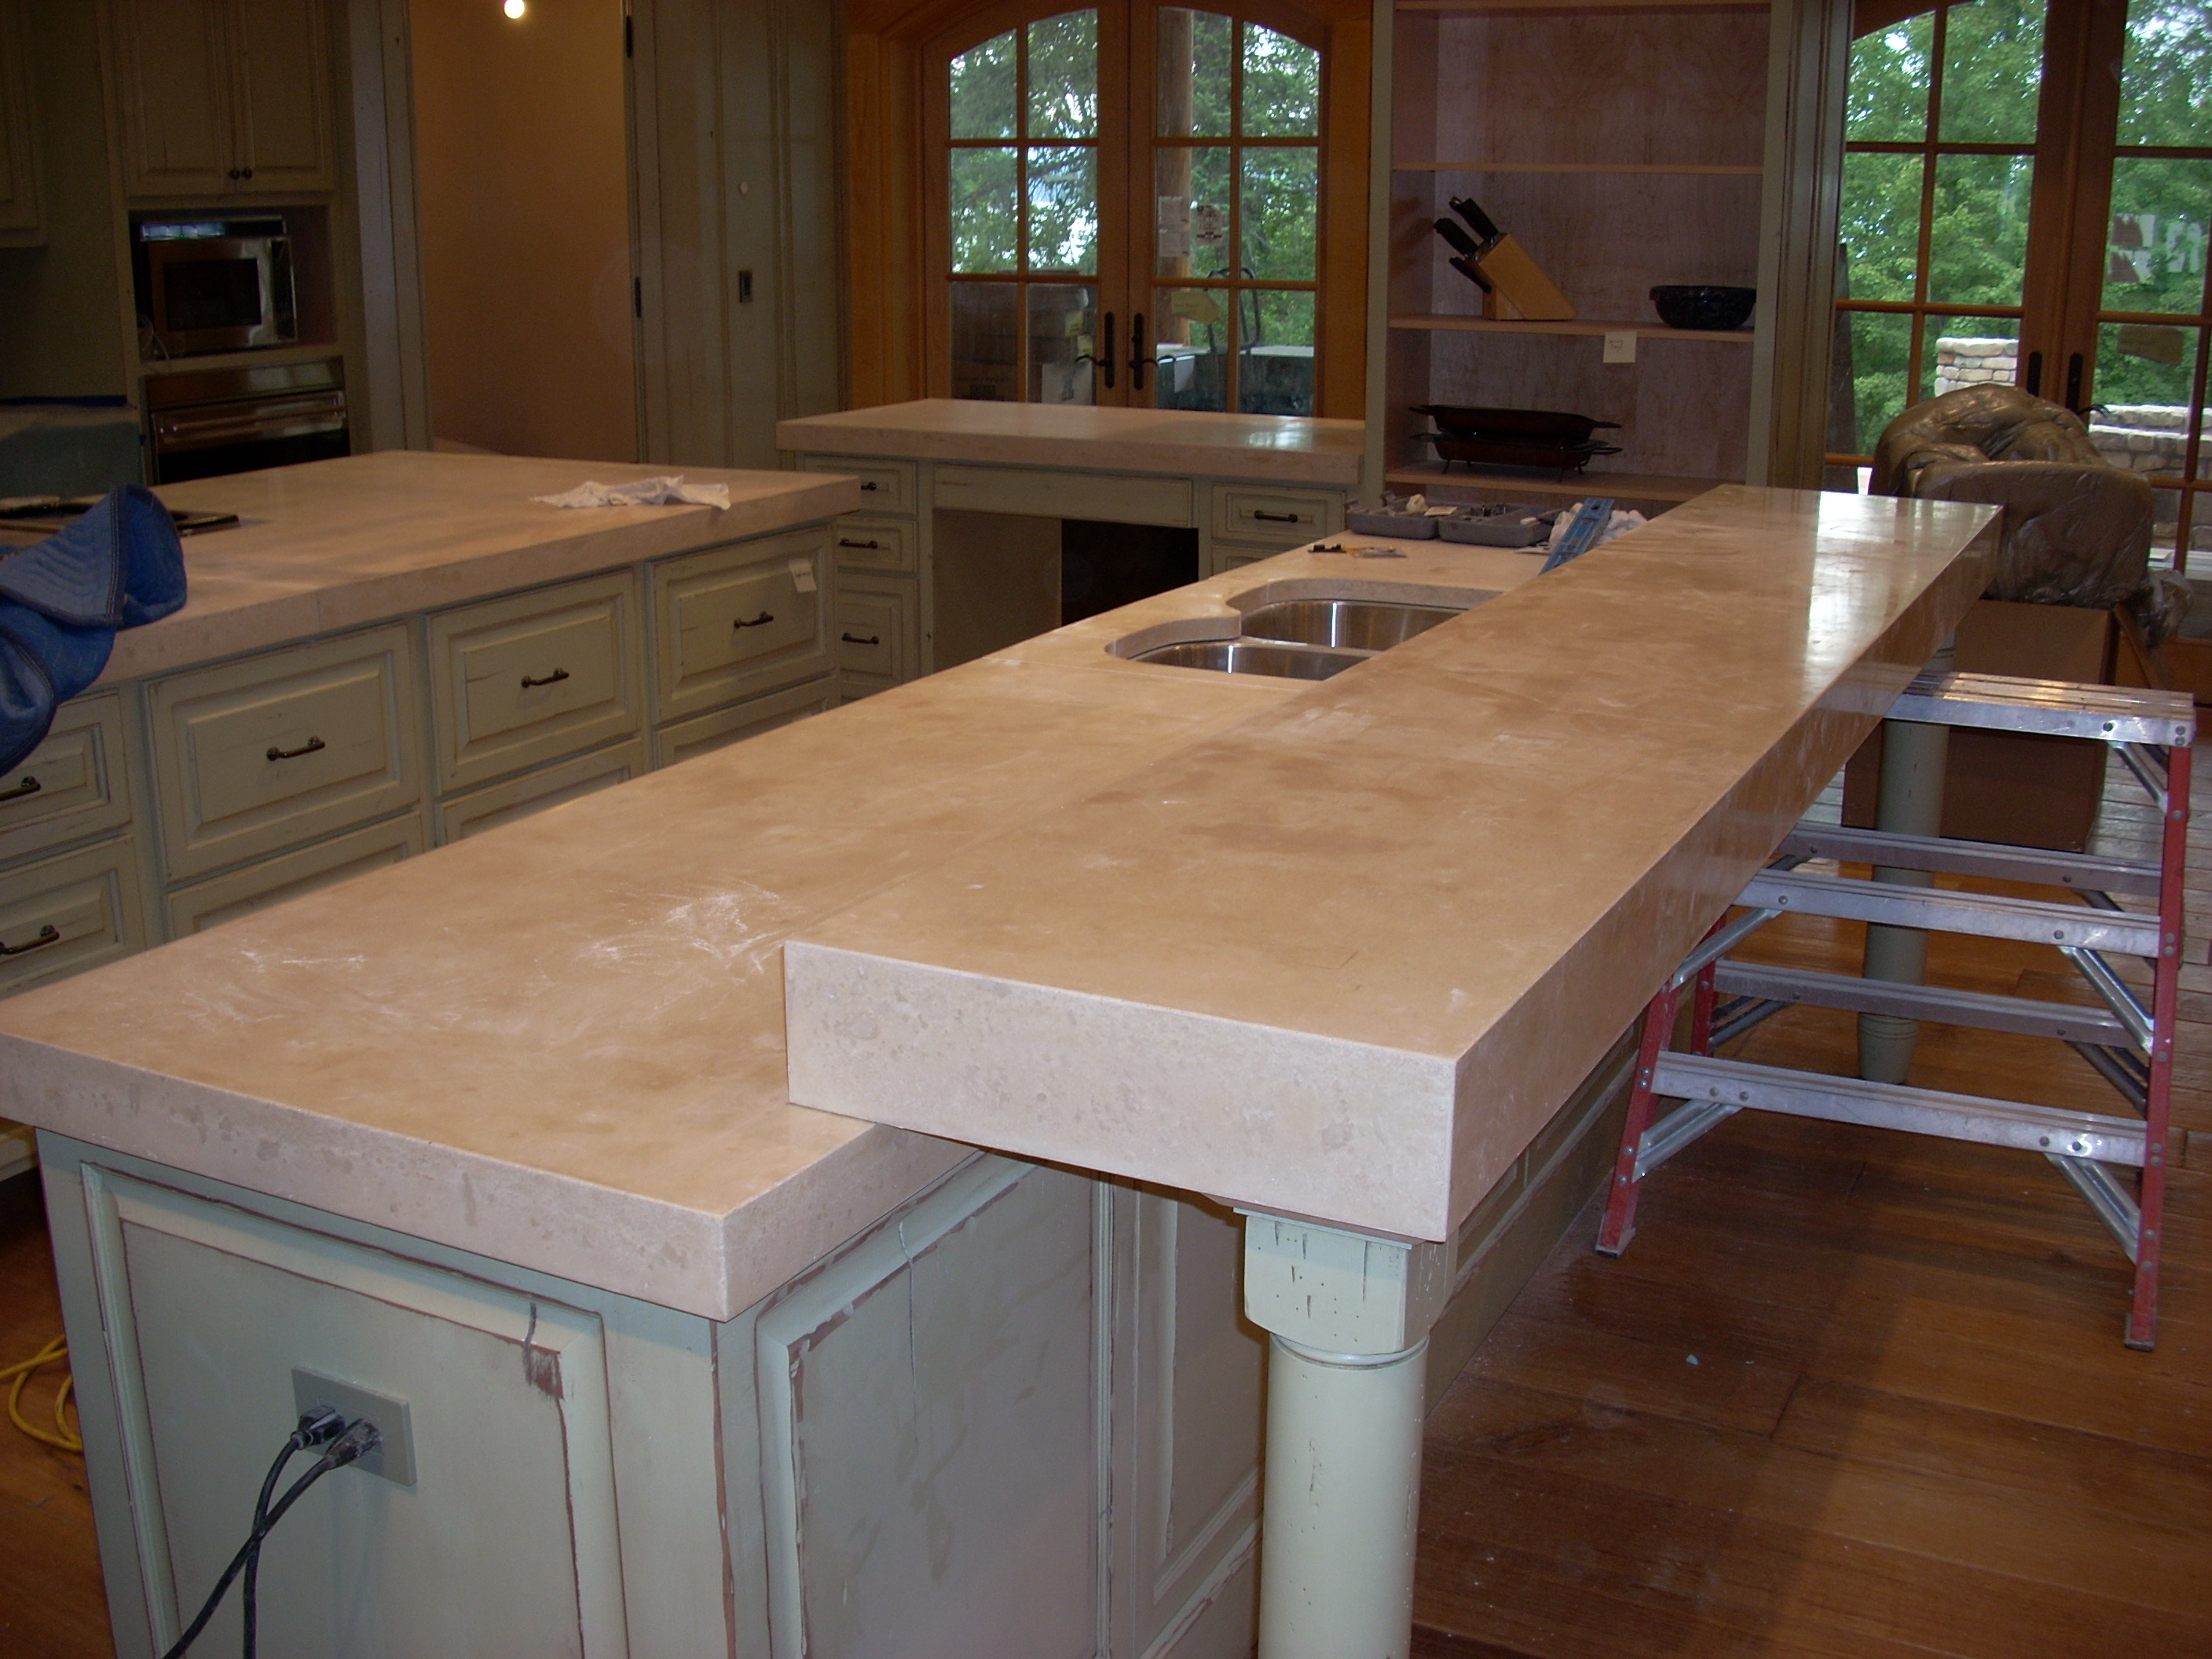 Kitchen or Outdoor Concrete Countertops « NW CONCRETEWORKS, INC.